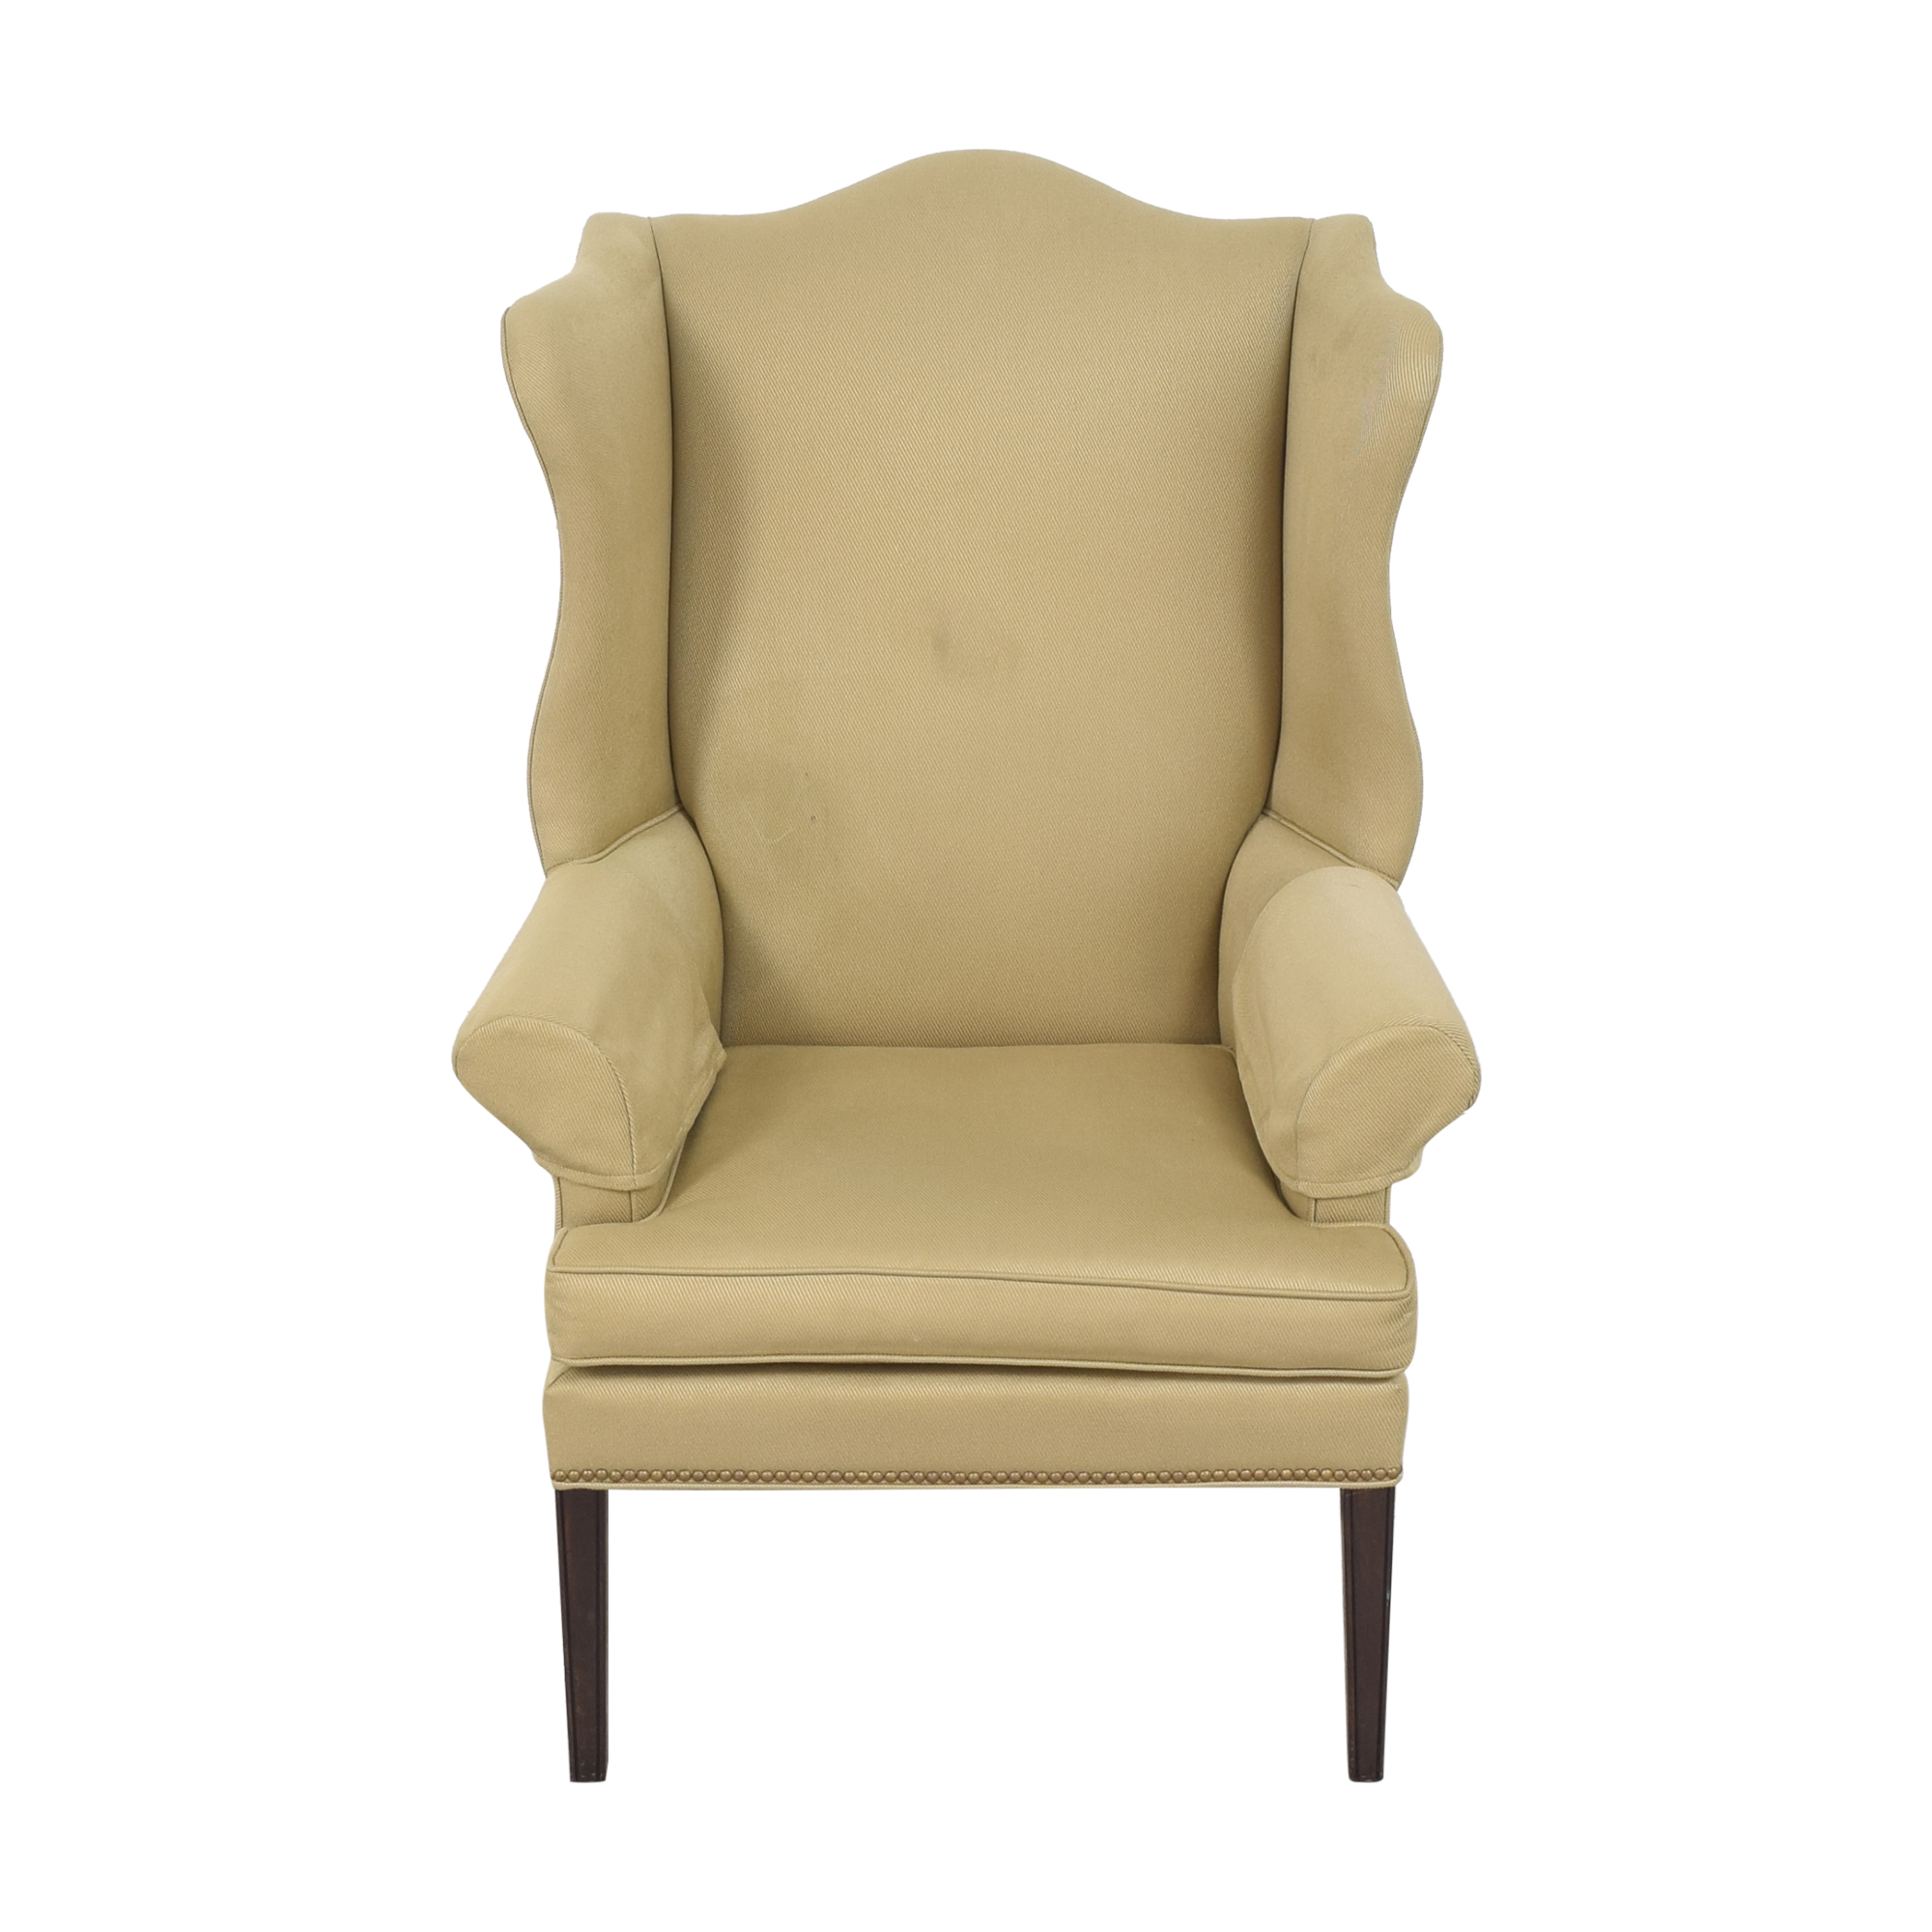 Ethan Allen Wing Back Chair / Accent Chairs